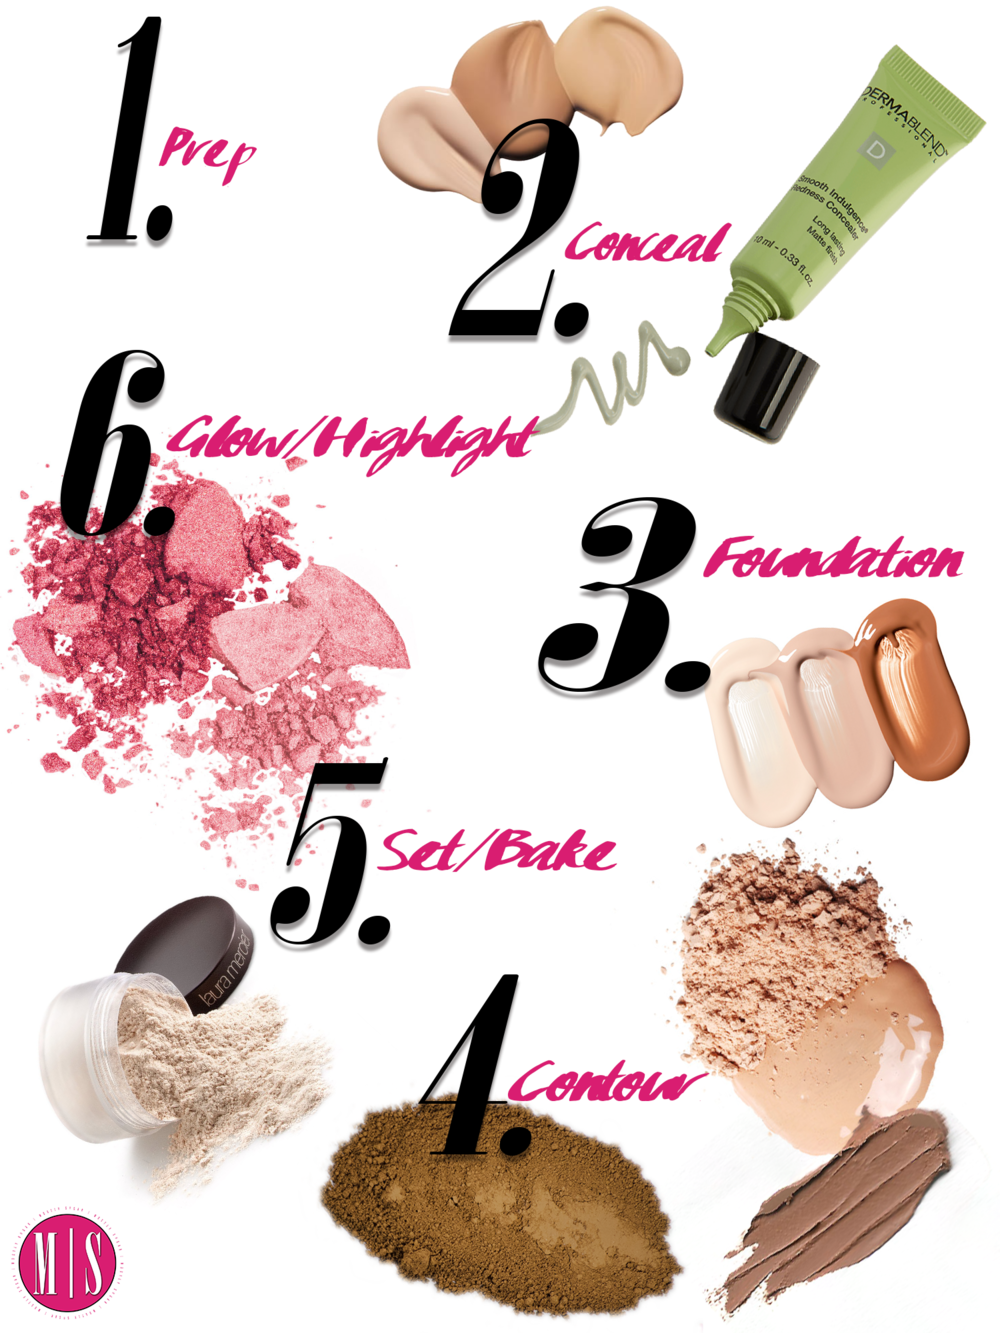 6 Steps for a Flawless Foundation